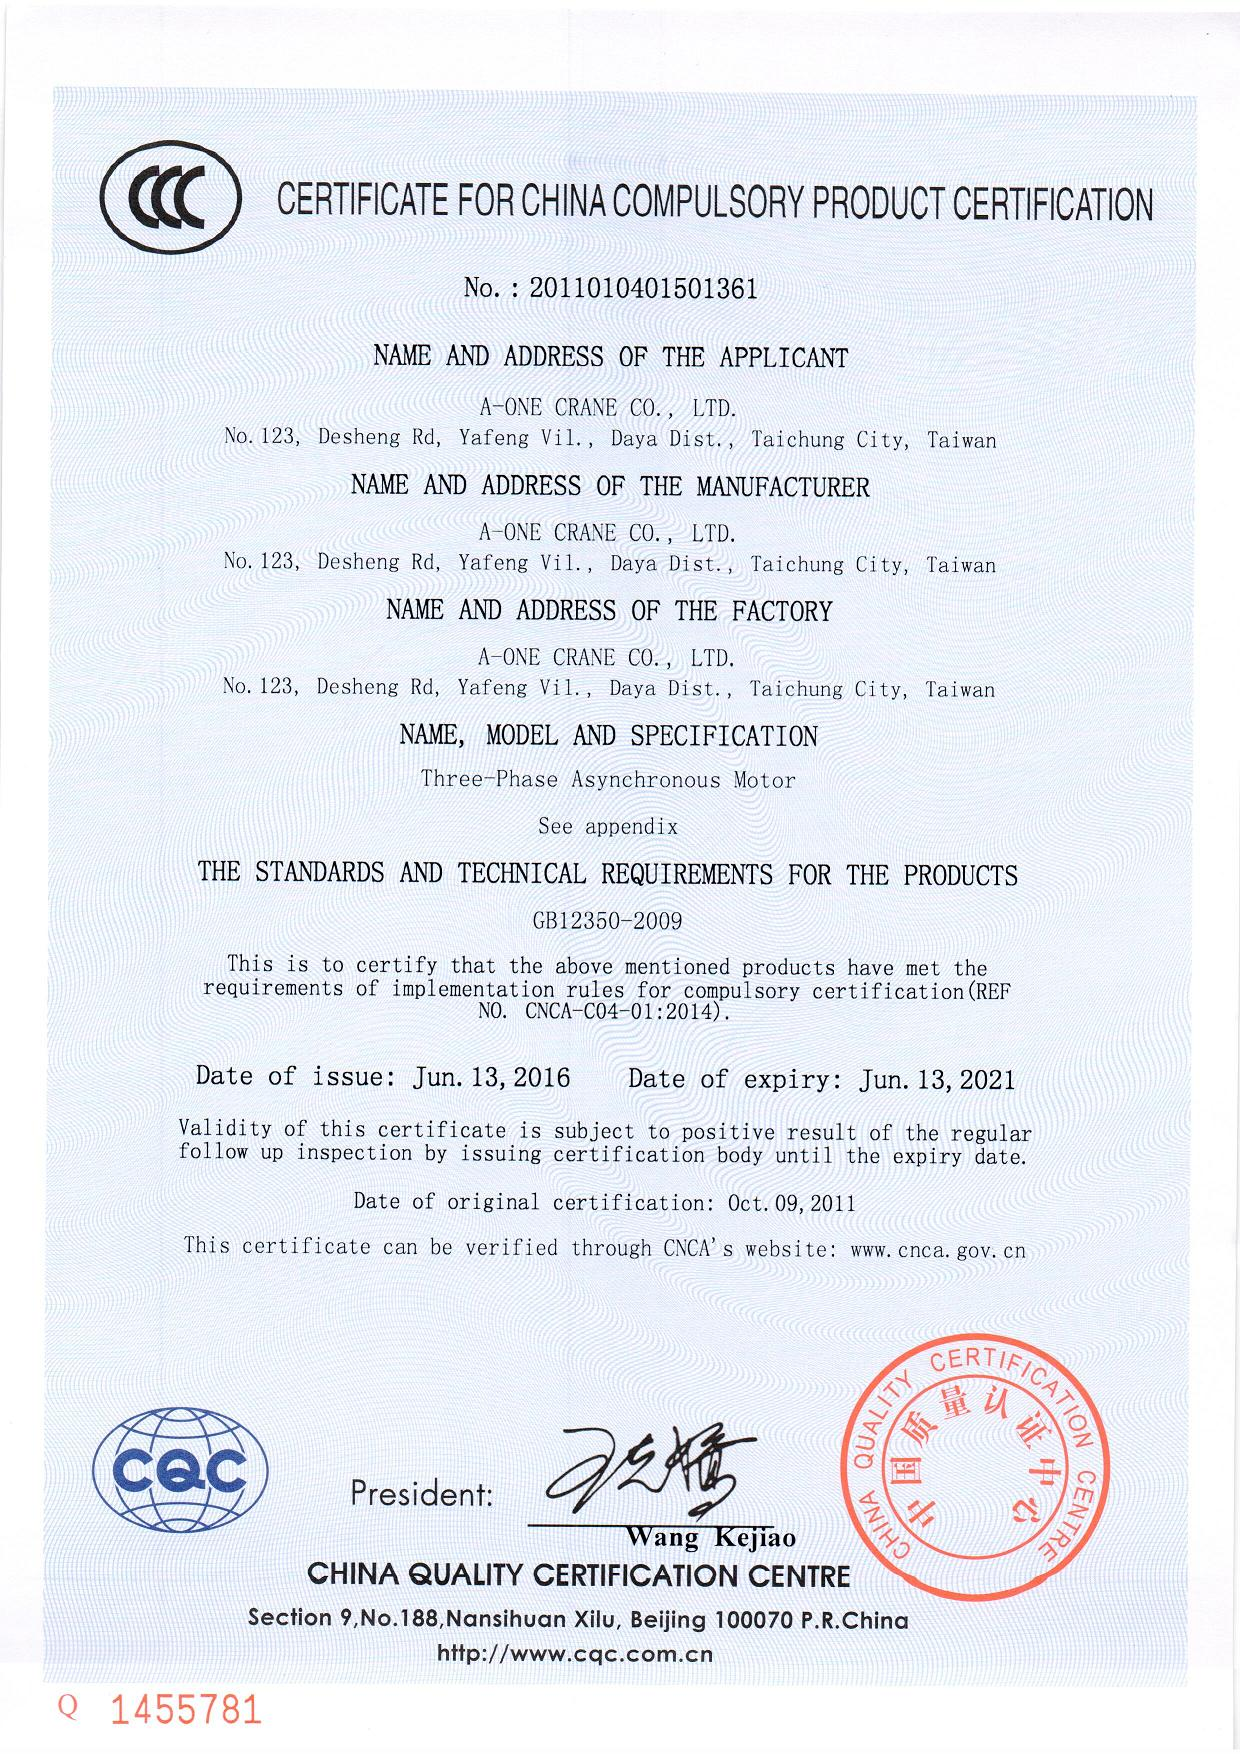 CCC CERTIFICATE FOR CHINA COMPULSORY PRODUCT CERTIFICATION ( CCC CERTIFICATE )